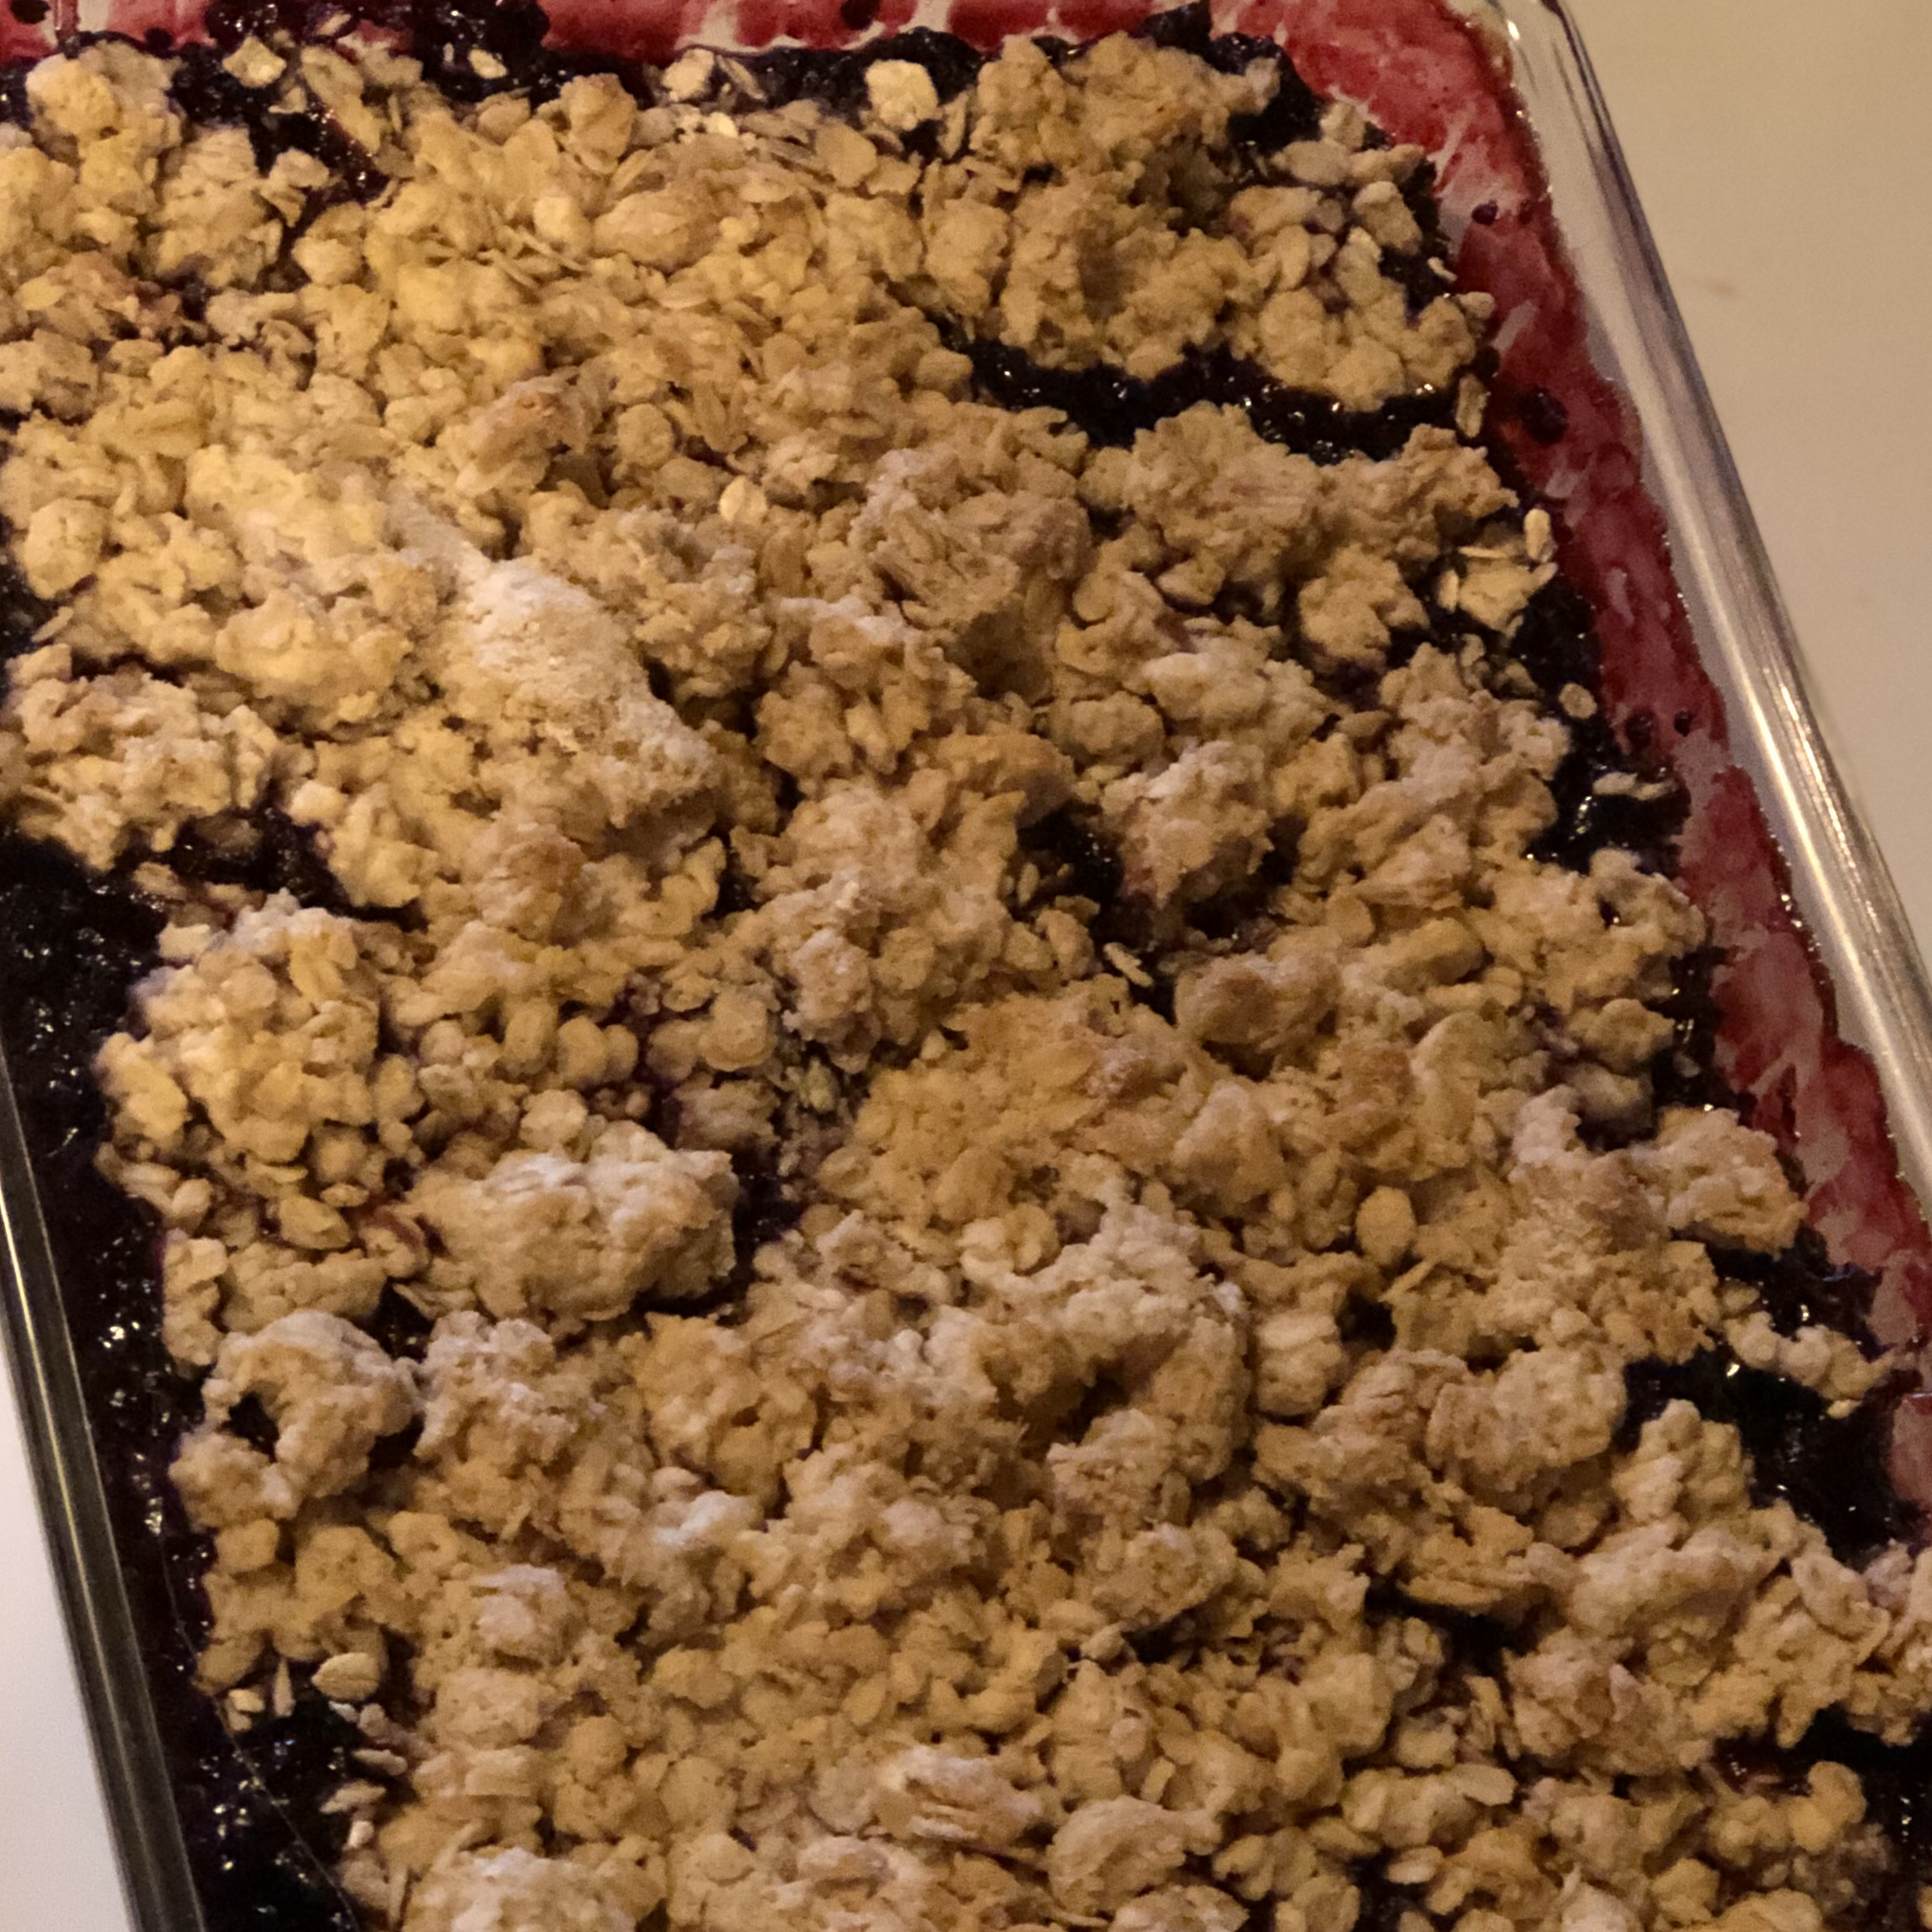 Crumbly Blackberry Cobbler